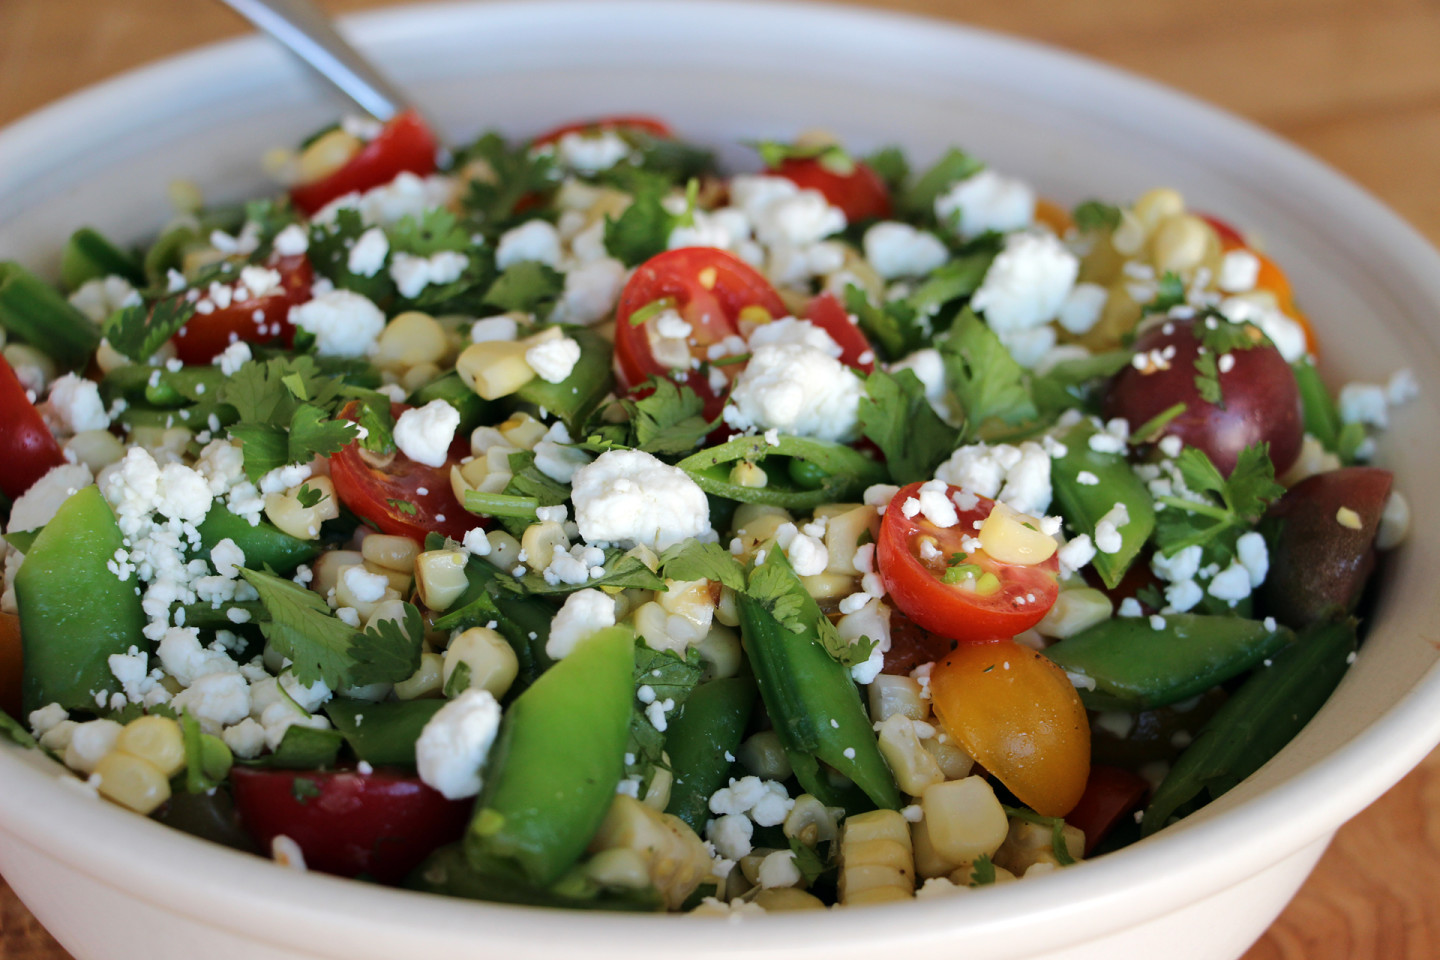 Bring On the Barbecue: Grilled Corn Salad with Sugar Snap Peas, Cherry Tomatoes, and Goat Cheese